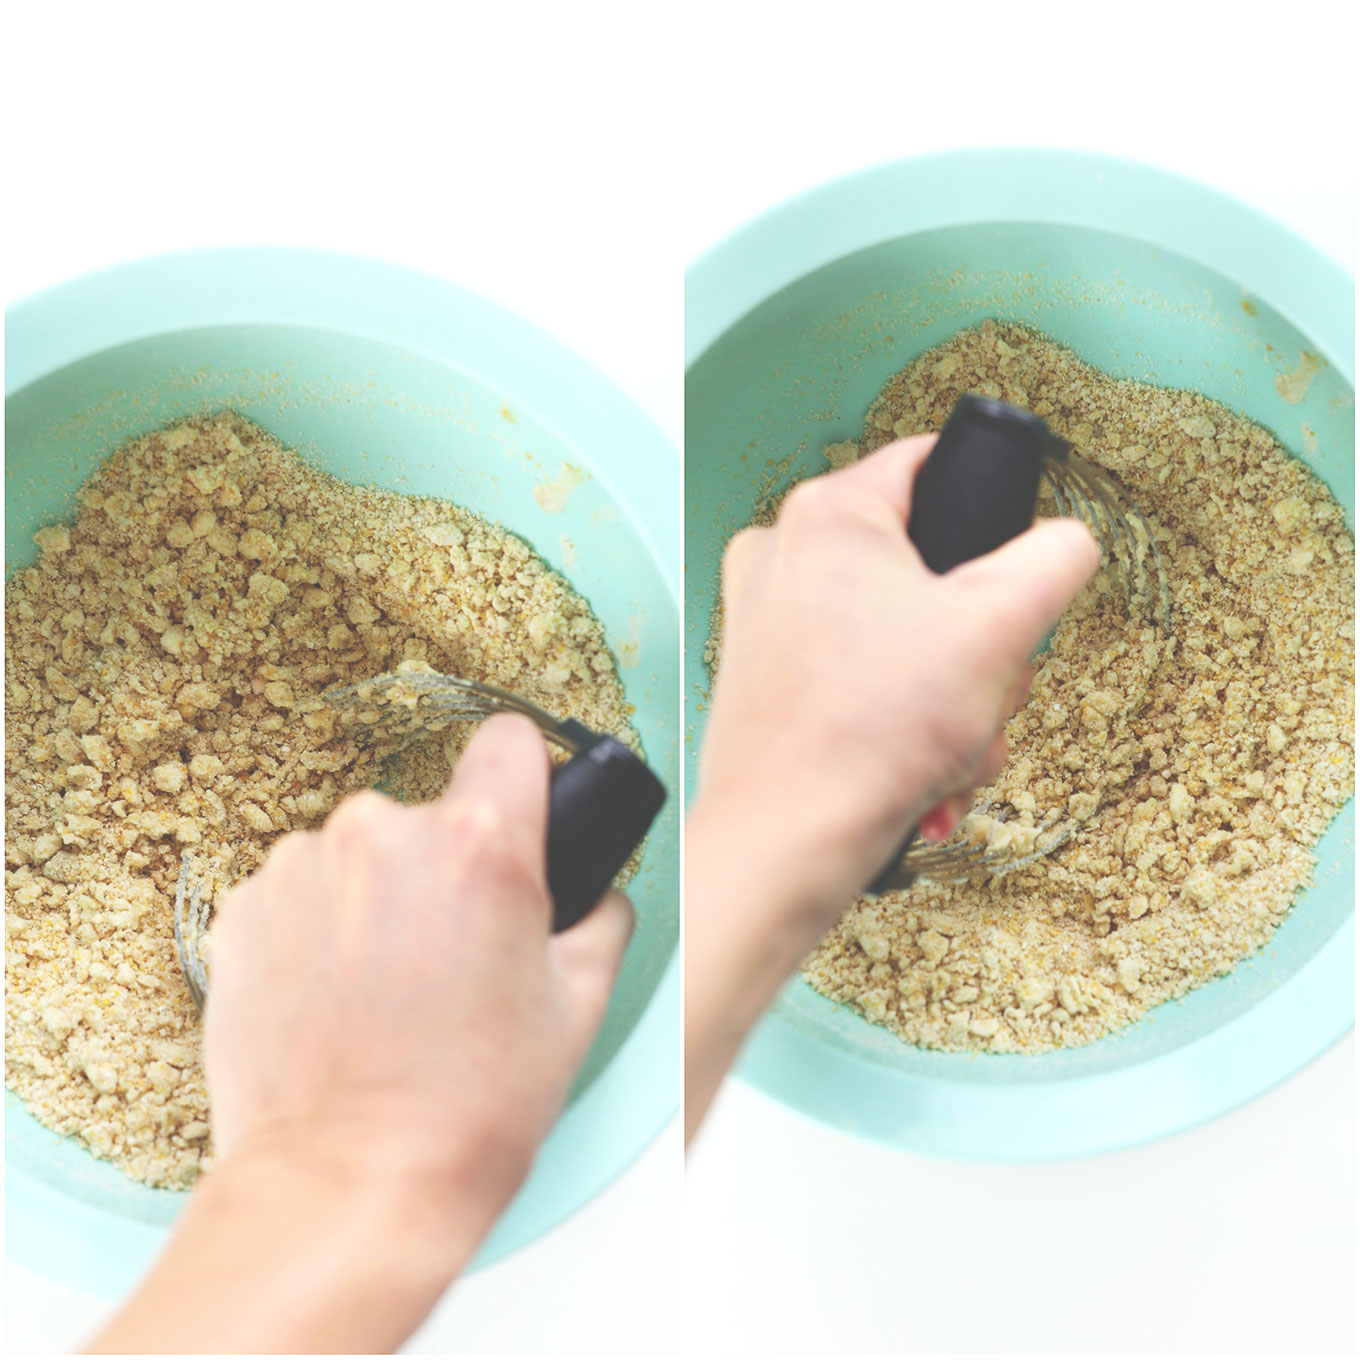 Using a pastry cutter to cut vegan butter into dry ingredients for Peanut Butter Cheese Crackers